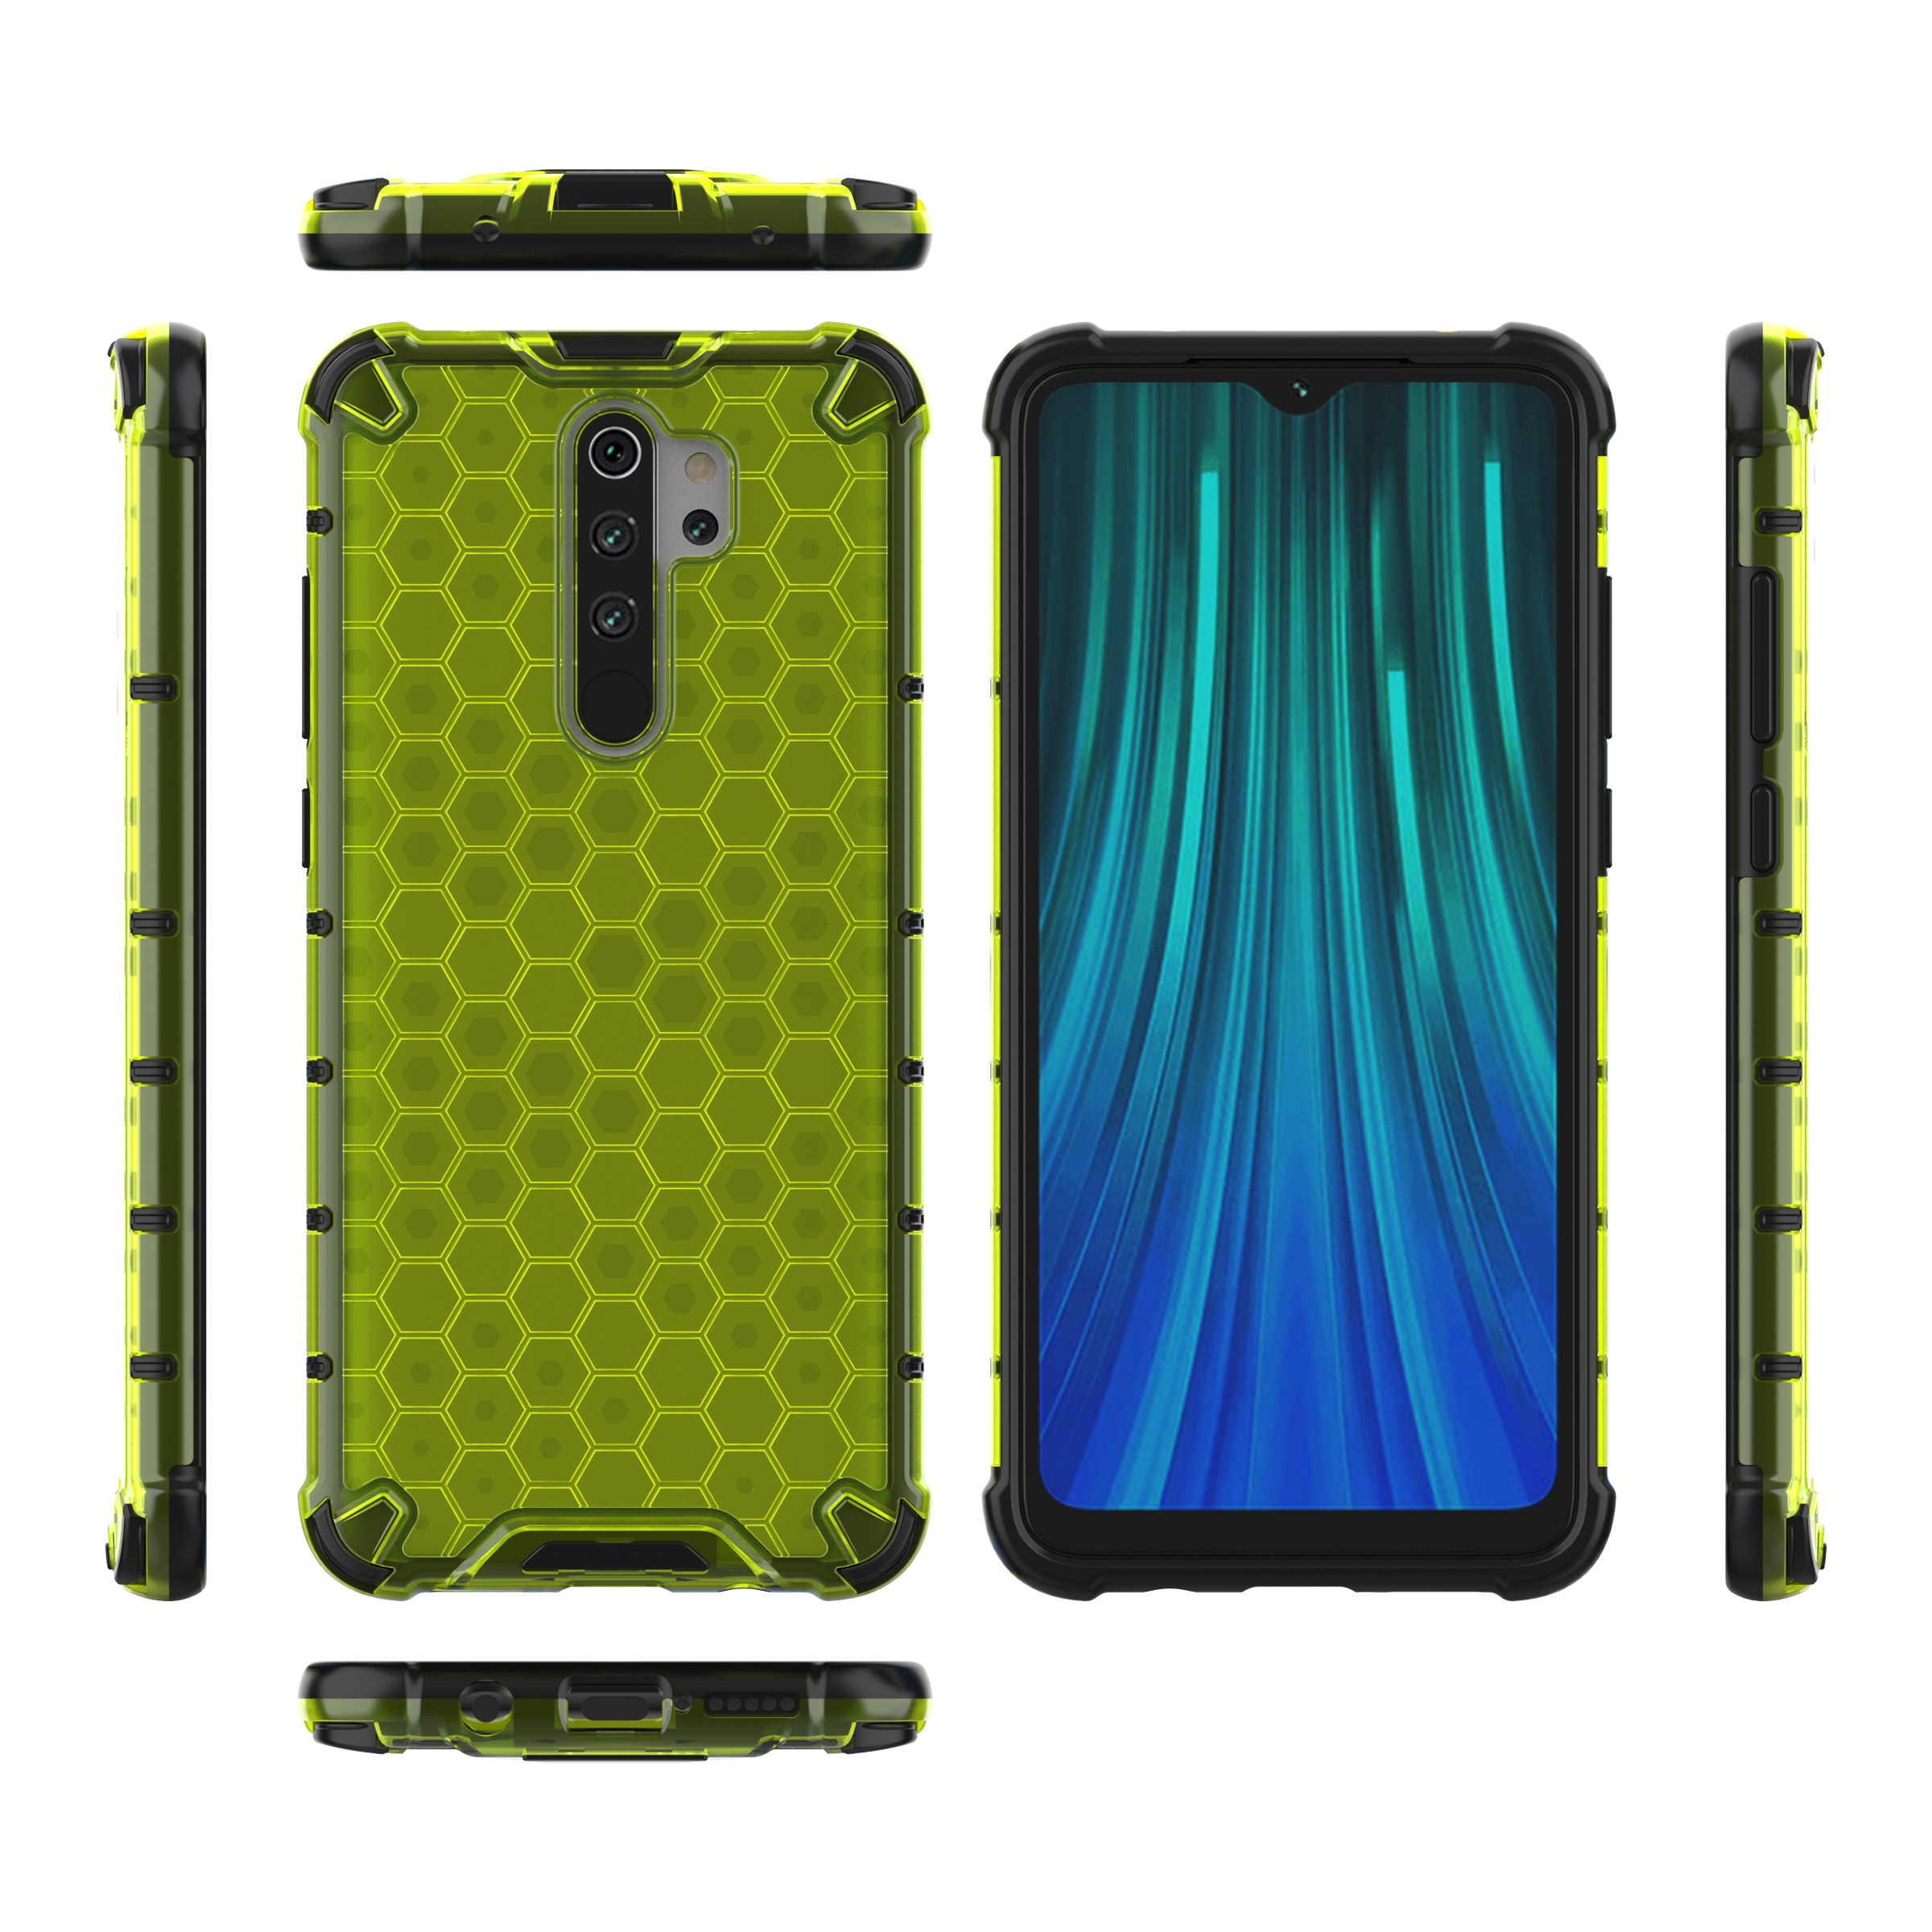 Ultra dunne telefoon case voor <span class=keywords><strong>Redmi</strong></span> <span class=keywords><strong>note</strong></span> <span class=keywords><strong>8</strong></span> <span class=keywords><strong>pro</strong></span>, pc tpu 2 in 1 telefoon case voor <span class=keywords><strong>Redmi</strong></span> <span class=keywords><strong>note</strong></span> <span class=keywords><strong>8</strong></span> <span class=keywords><strong>pro</strong></span>